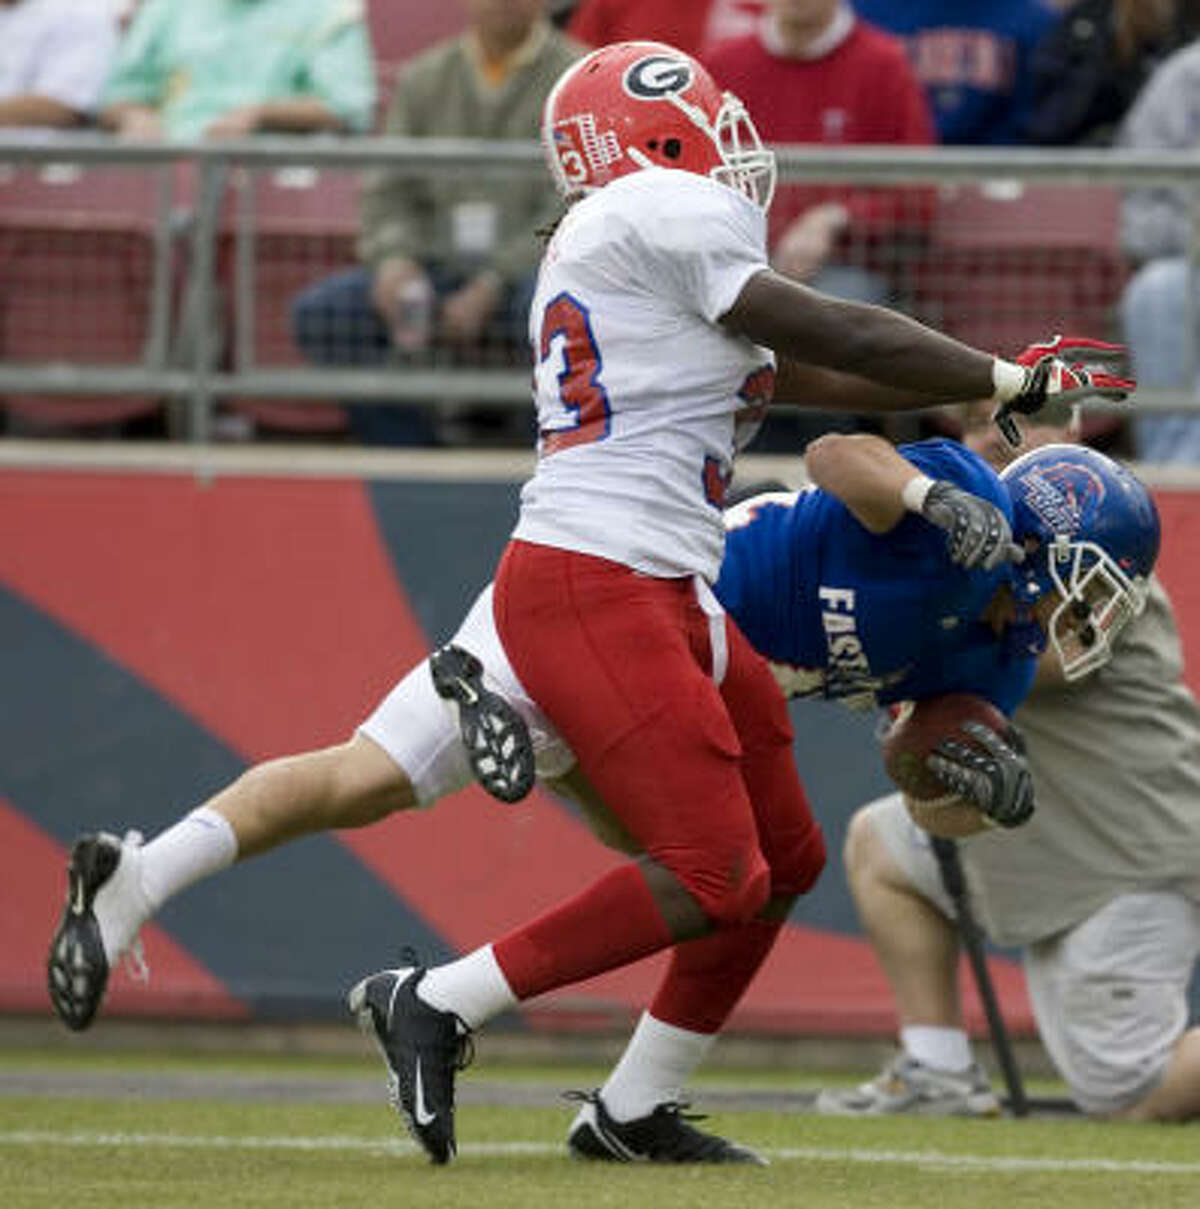 Ian Johnson of Boise State and the West team dives pas Georgia's Dannell Ellerbe.